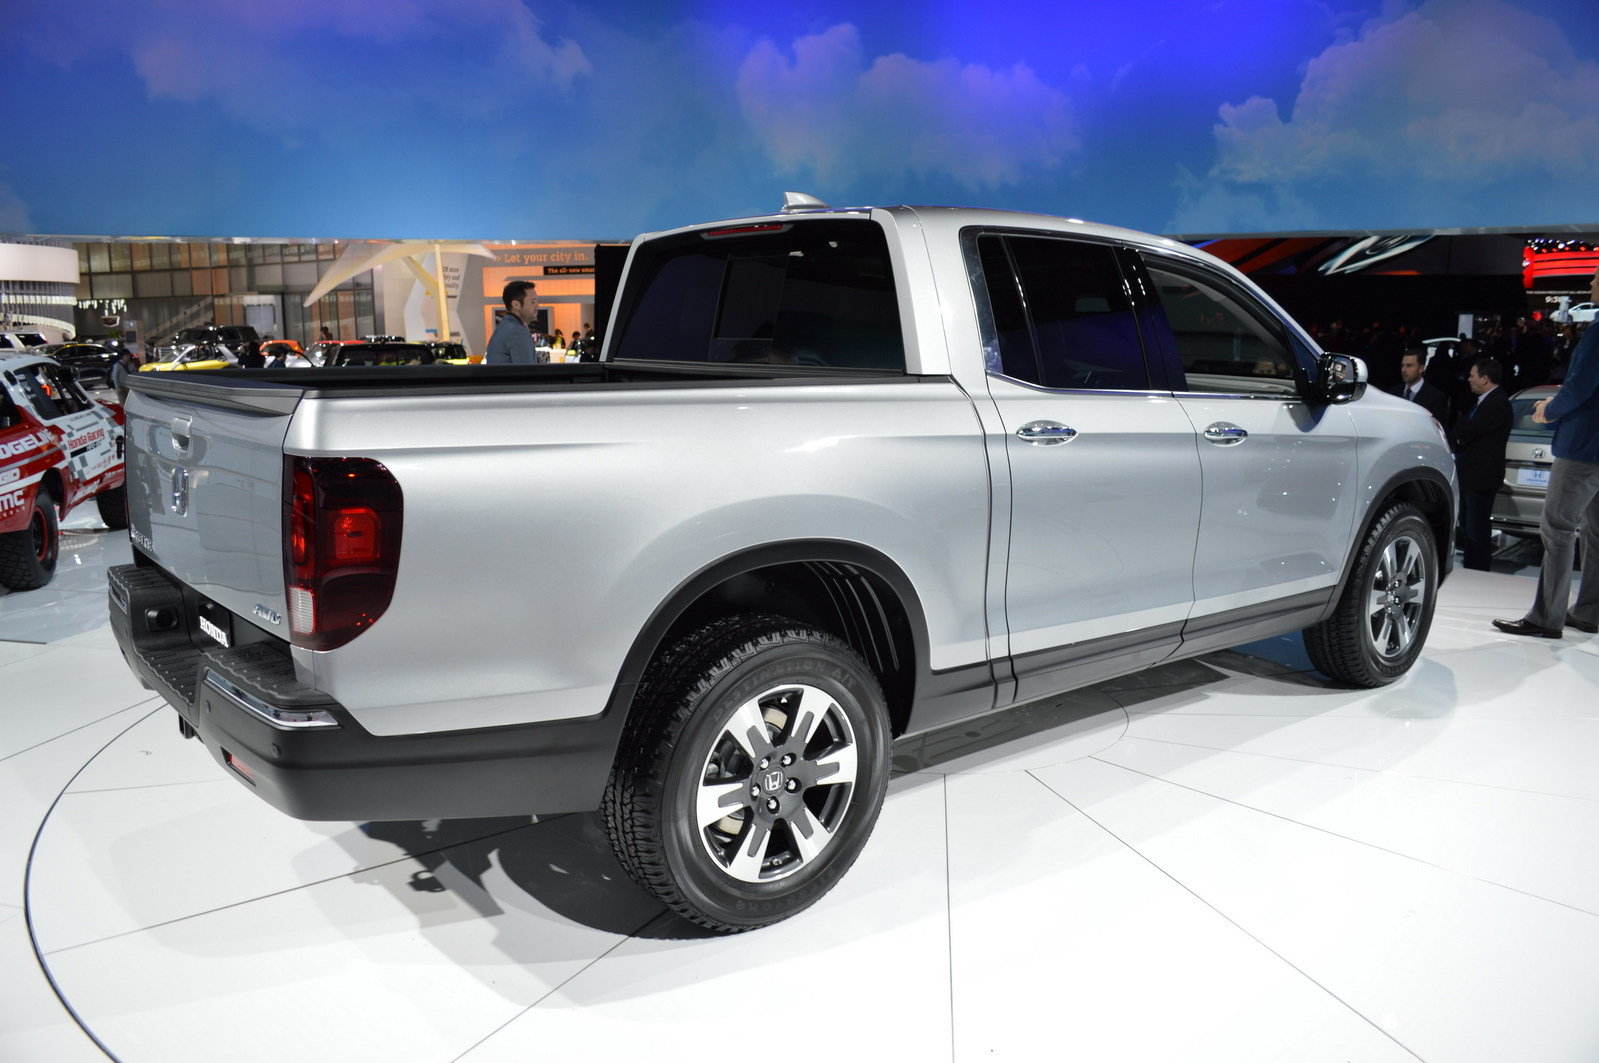 2017 honda ridgeline picture 661808 truck review top speed. Black Bedroom Furniture Sets. Home Design Ideas